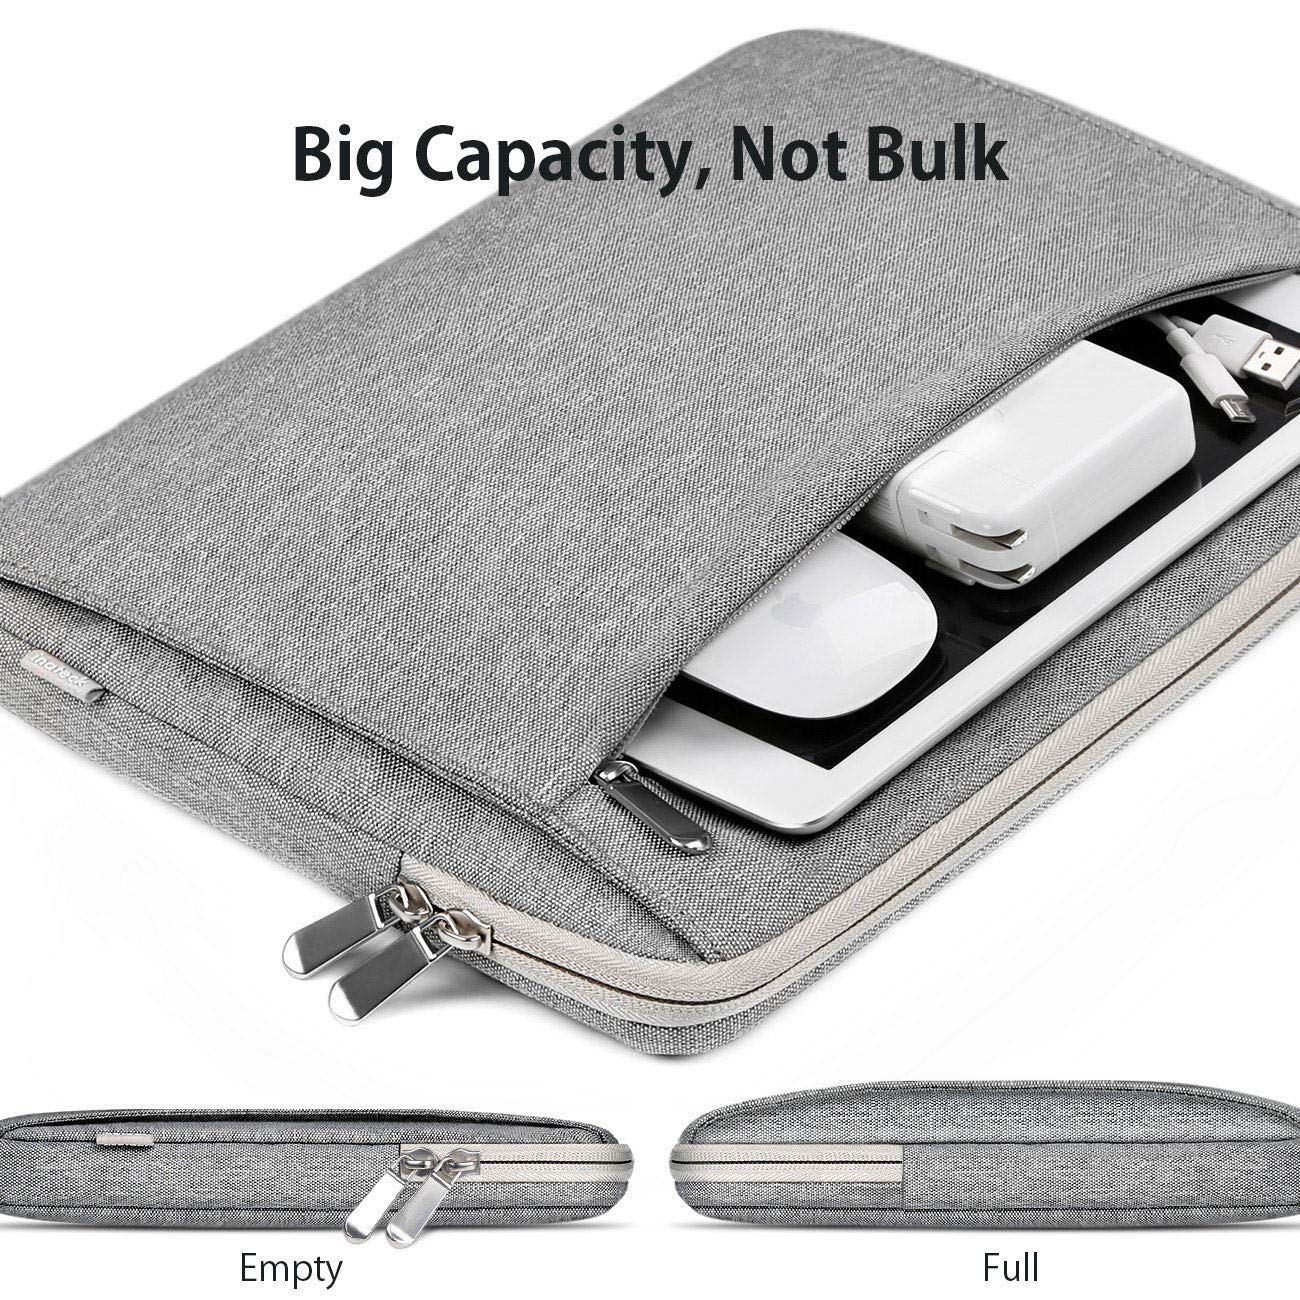 Inateck 360/° All-Round Protection Laptop Sleeve Case Shockproof Bag Compatible 12.3 Surface Pro 6//5//4//3 13 MacBook Pro 2018//2017//2016 Tablets//Ultrabooks//Notbooks 2018 MacBook Air 13